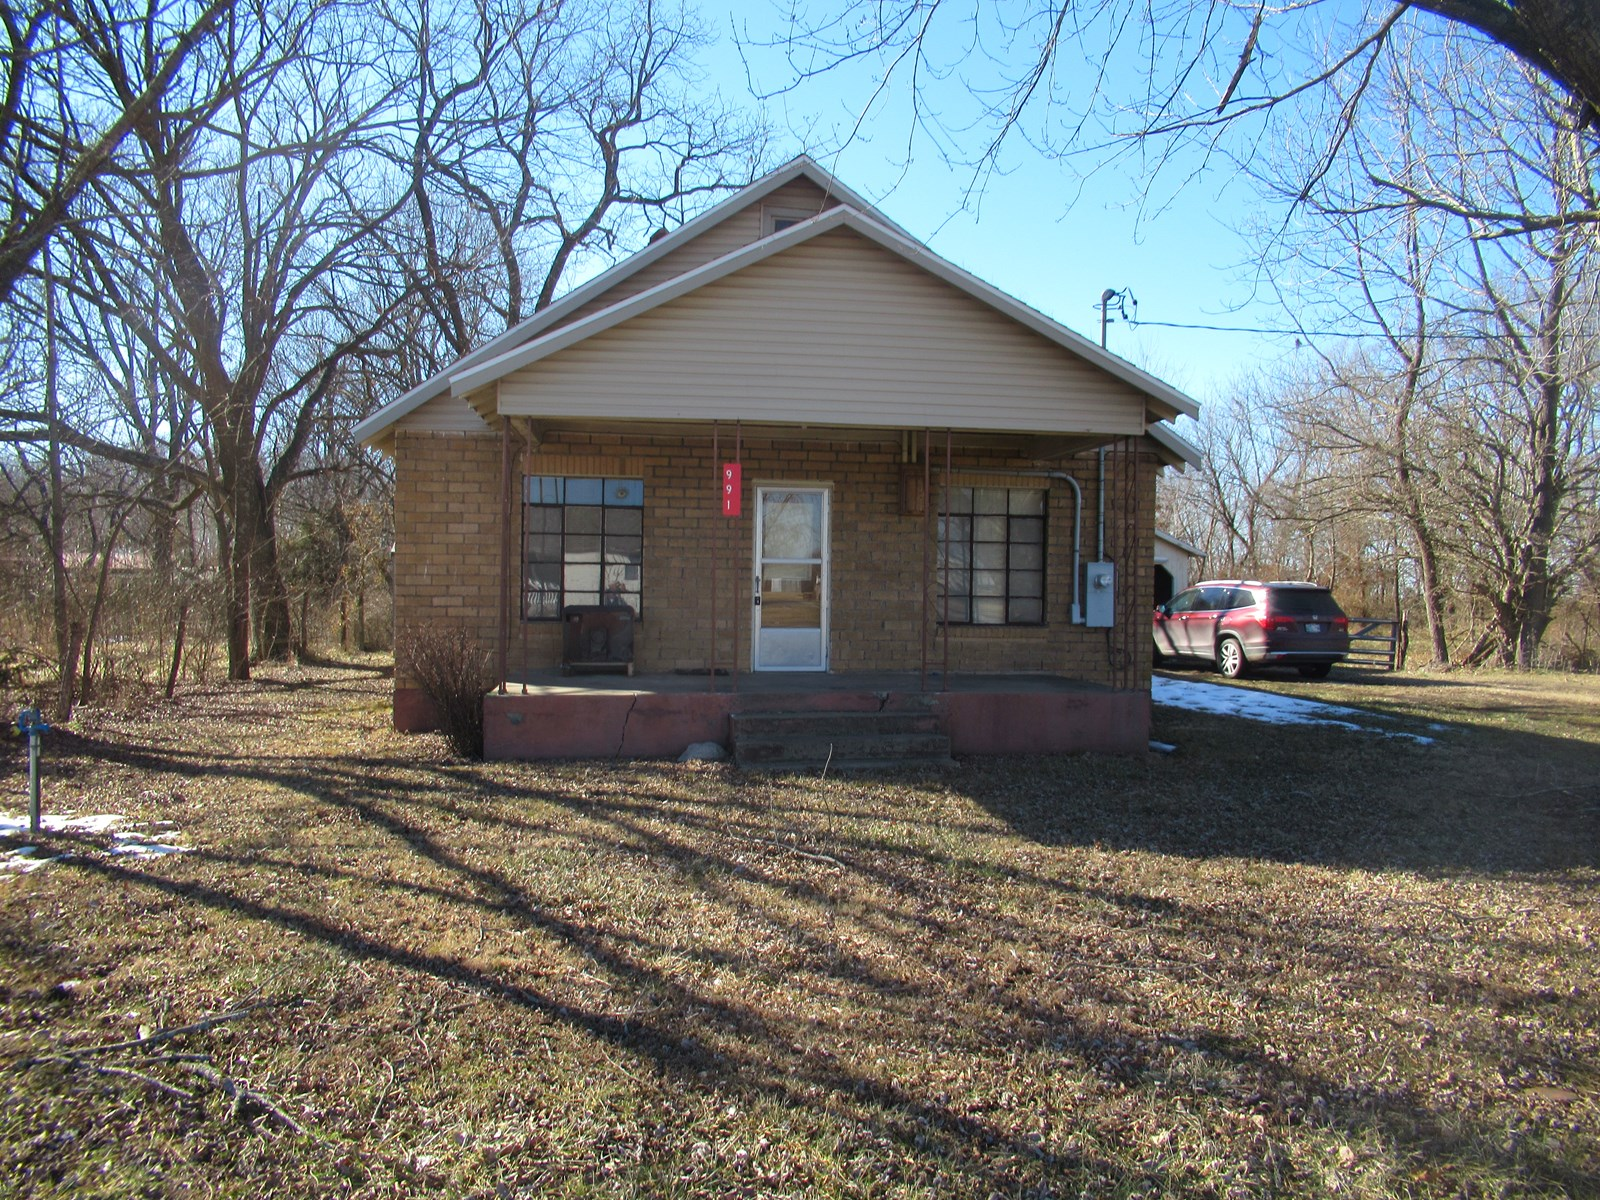 Home For Sale in Arcola, Mo